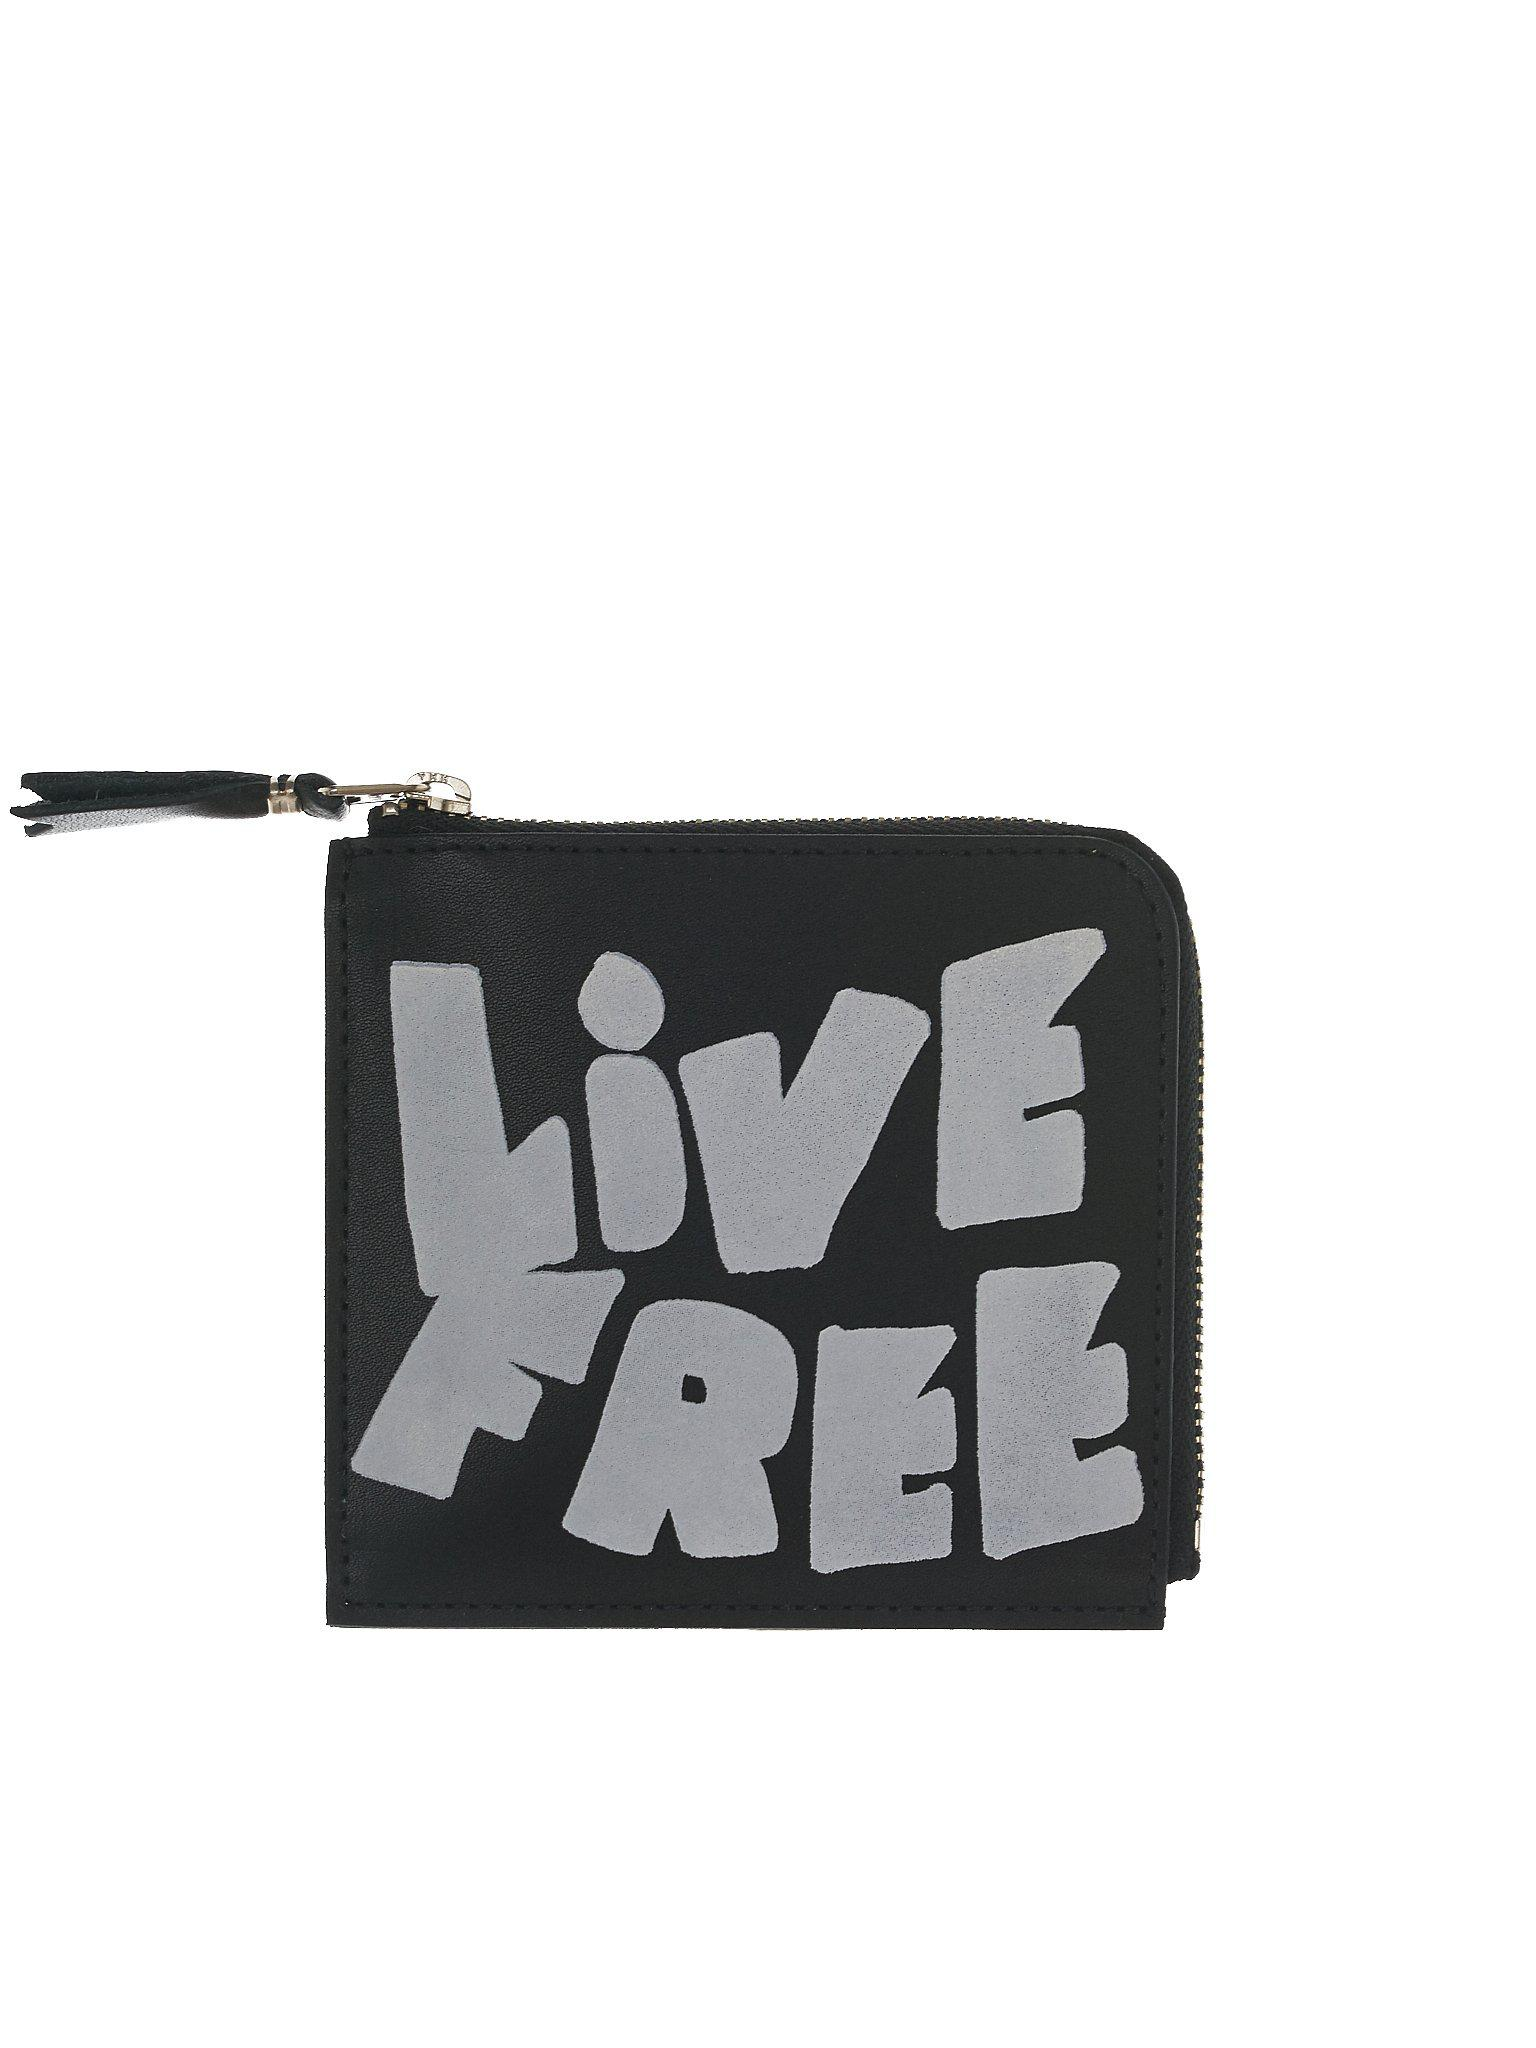 Comme Des Gar莽ons Wallet Live Free zip wallet Free Shipping High Quality Shopping Online High Quality wPlA9eWMZ